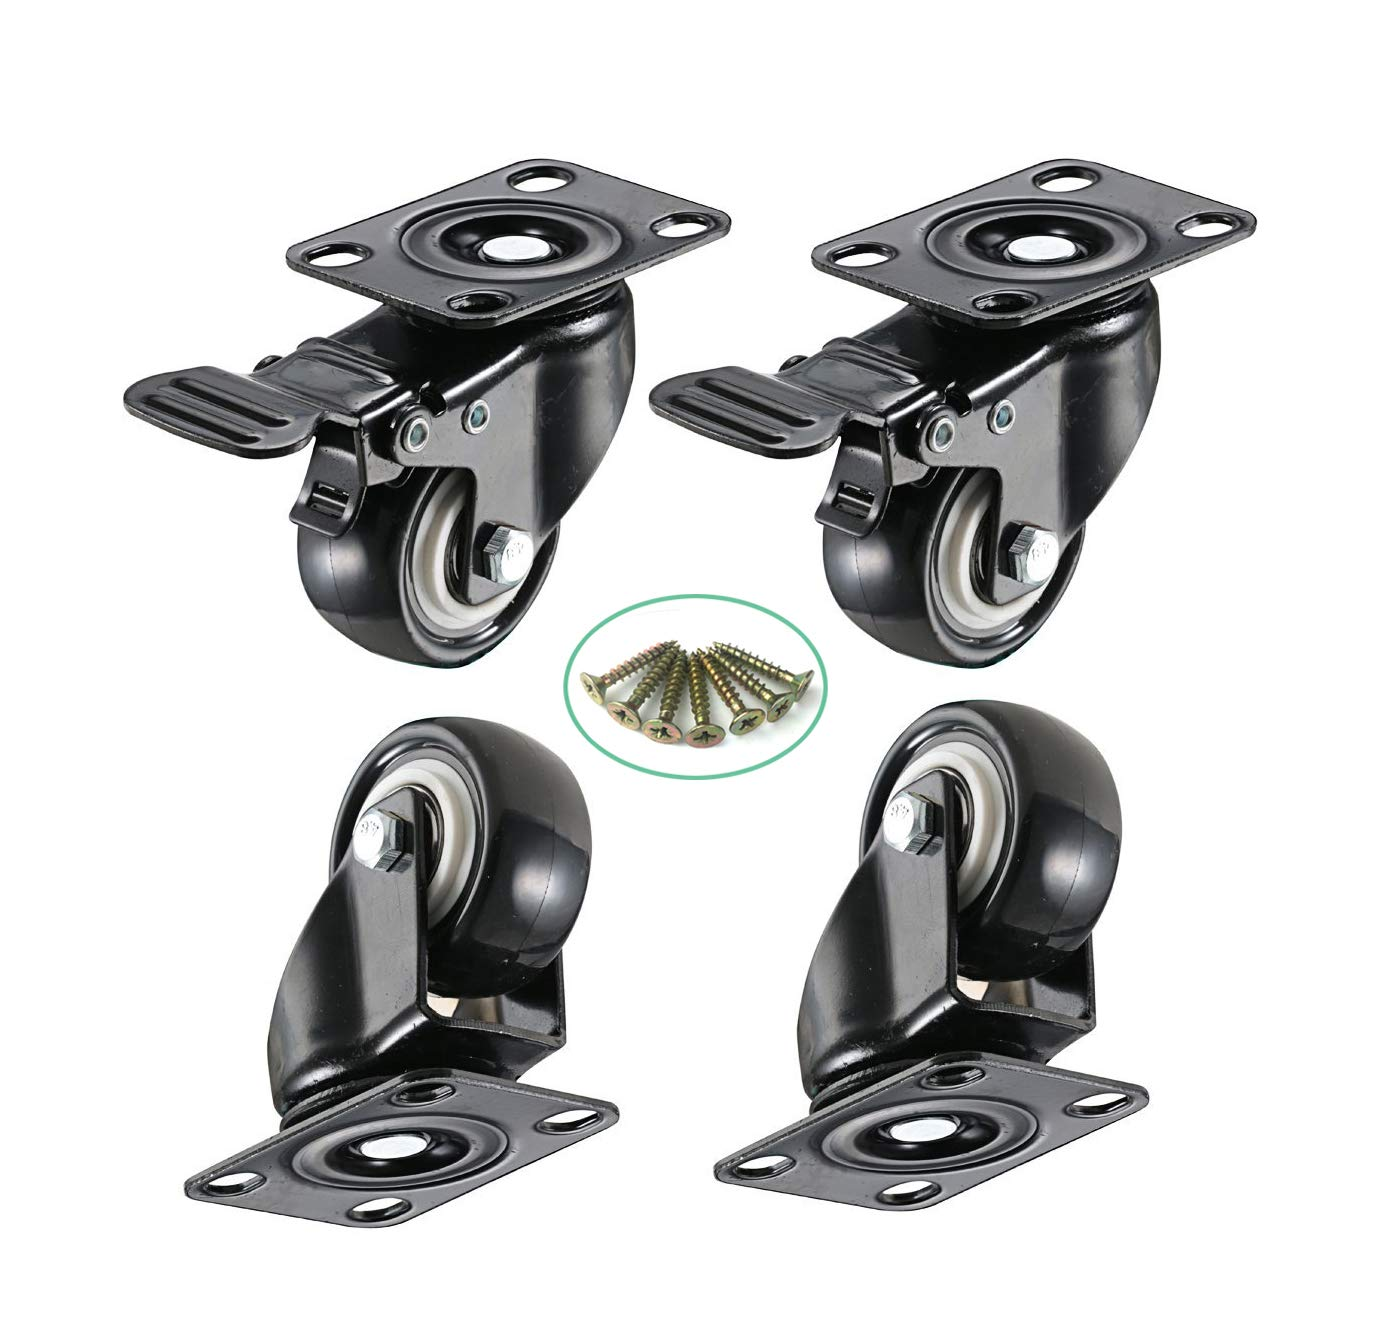 Low Profile Castor Wheel 2 inch Rubber Swivel Caster 360 Degree Swivel Furniture Wheel Set of 4 Capacity 390 lbs with Brakes with Screws